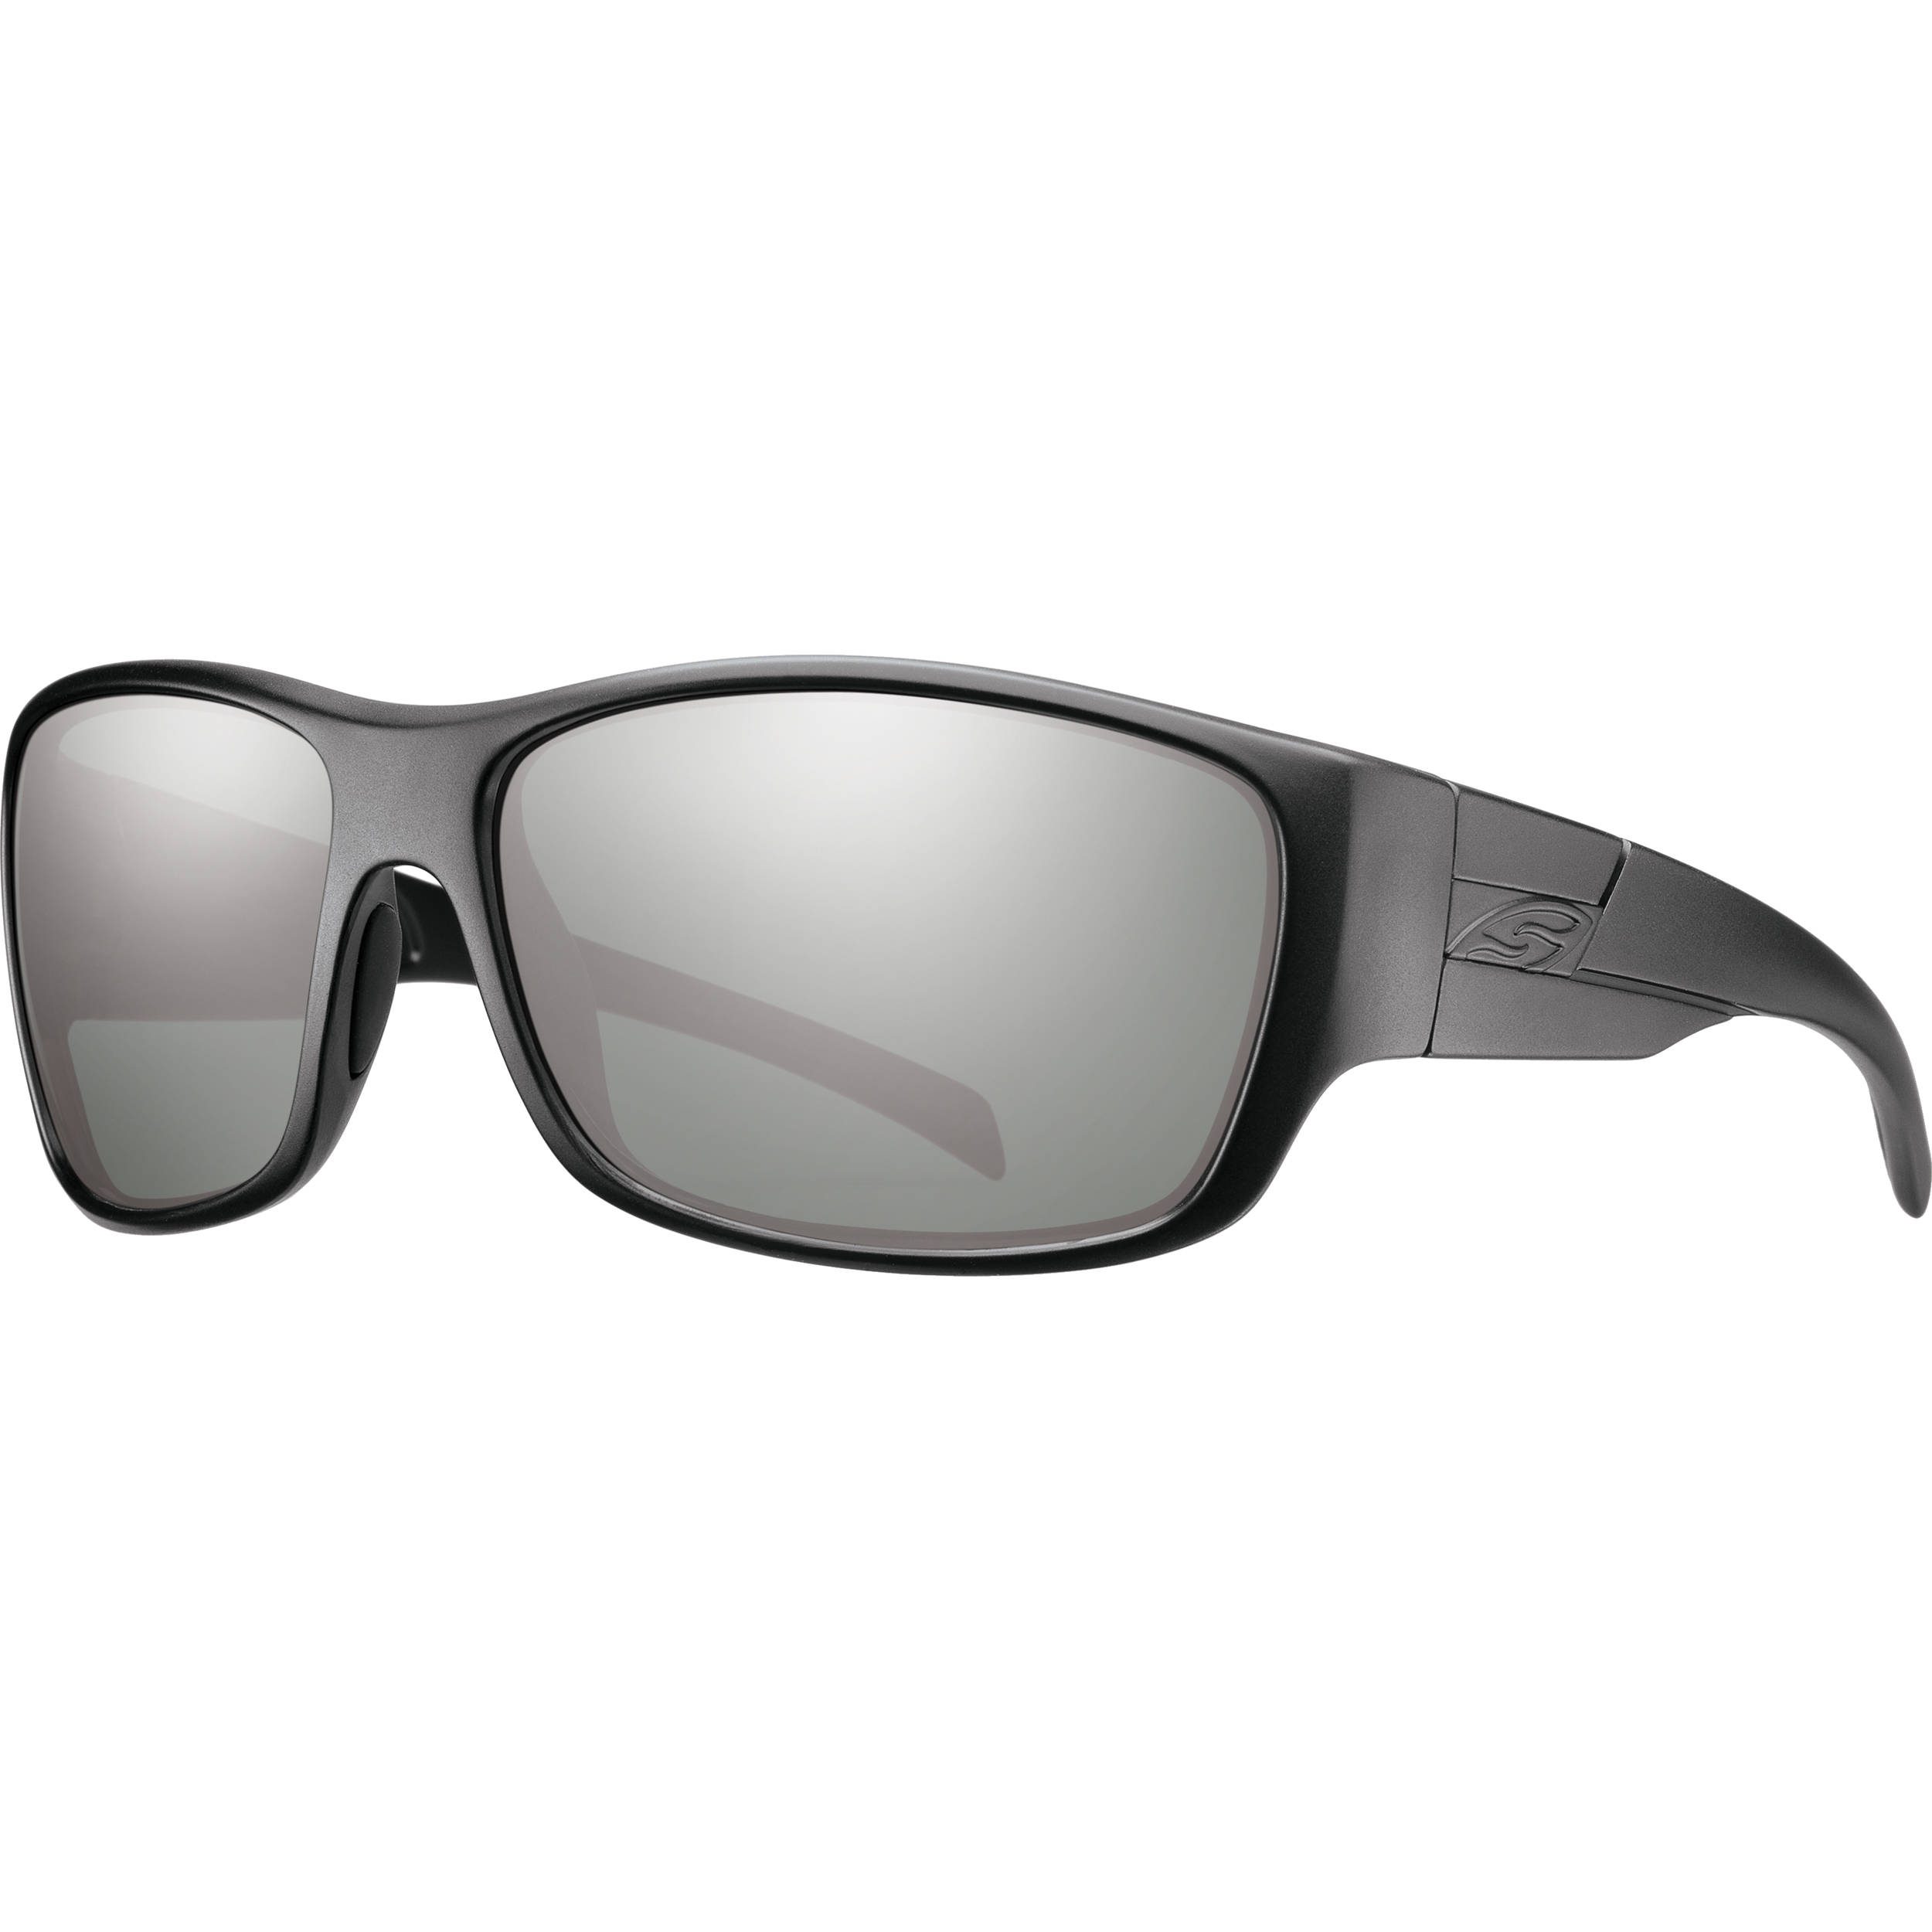 c11eaa7f3a Smith Optics Frontman Elite Ballistic Sunglasses FNTRPGYMBK on PopScreen